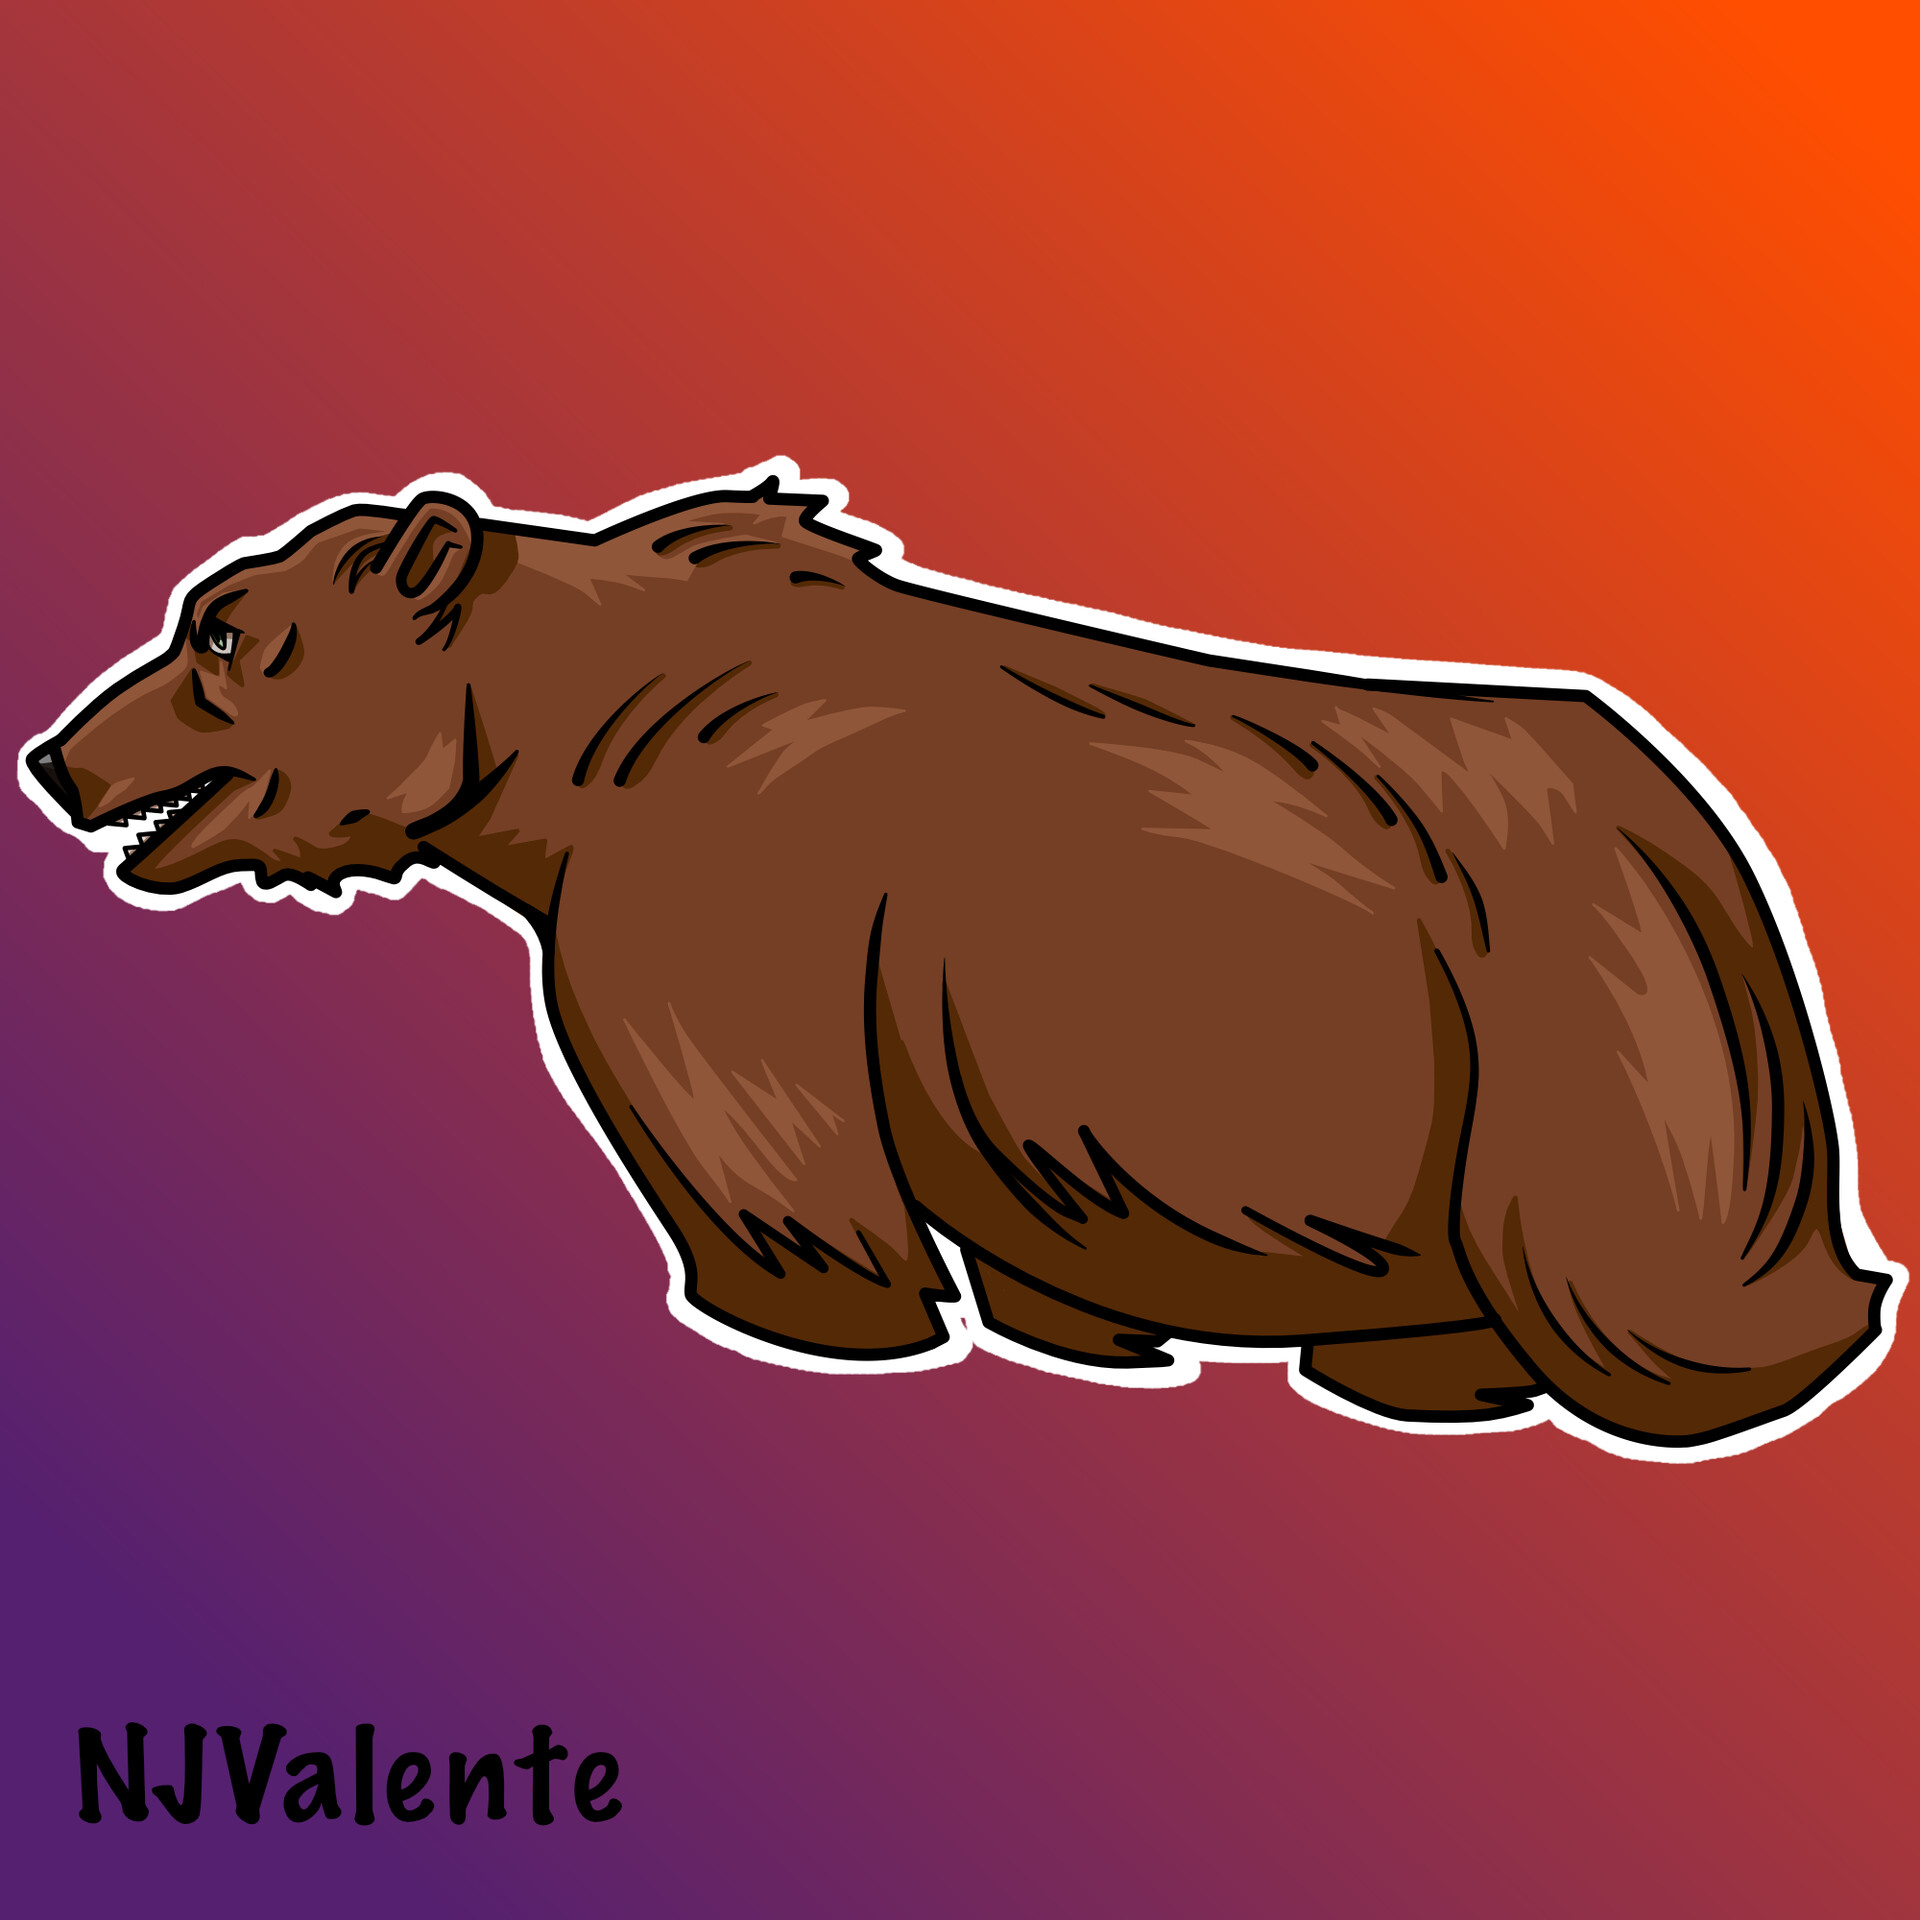 Nick valente bearnobg